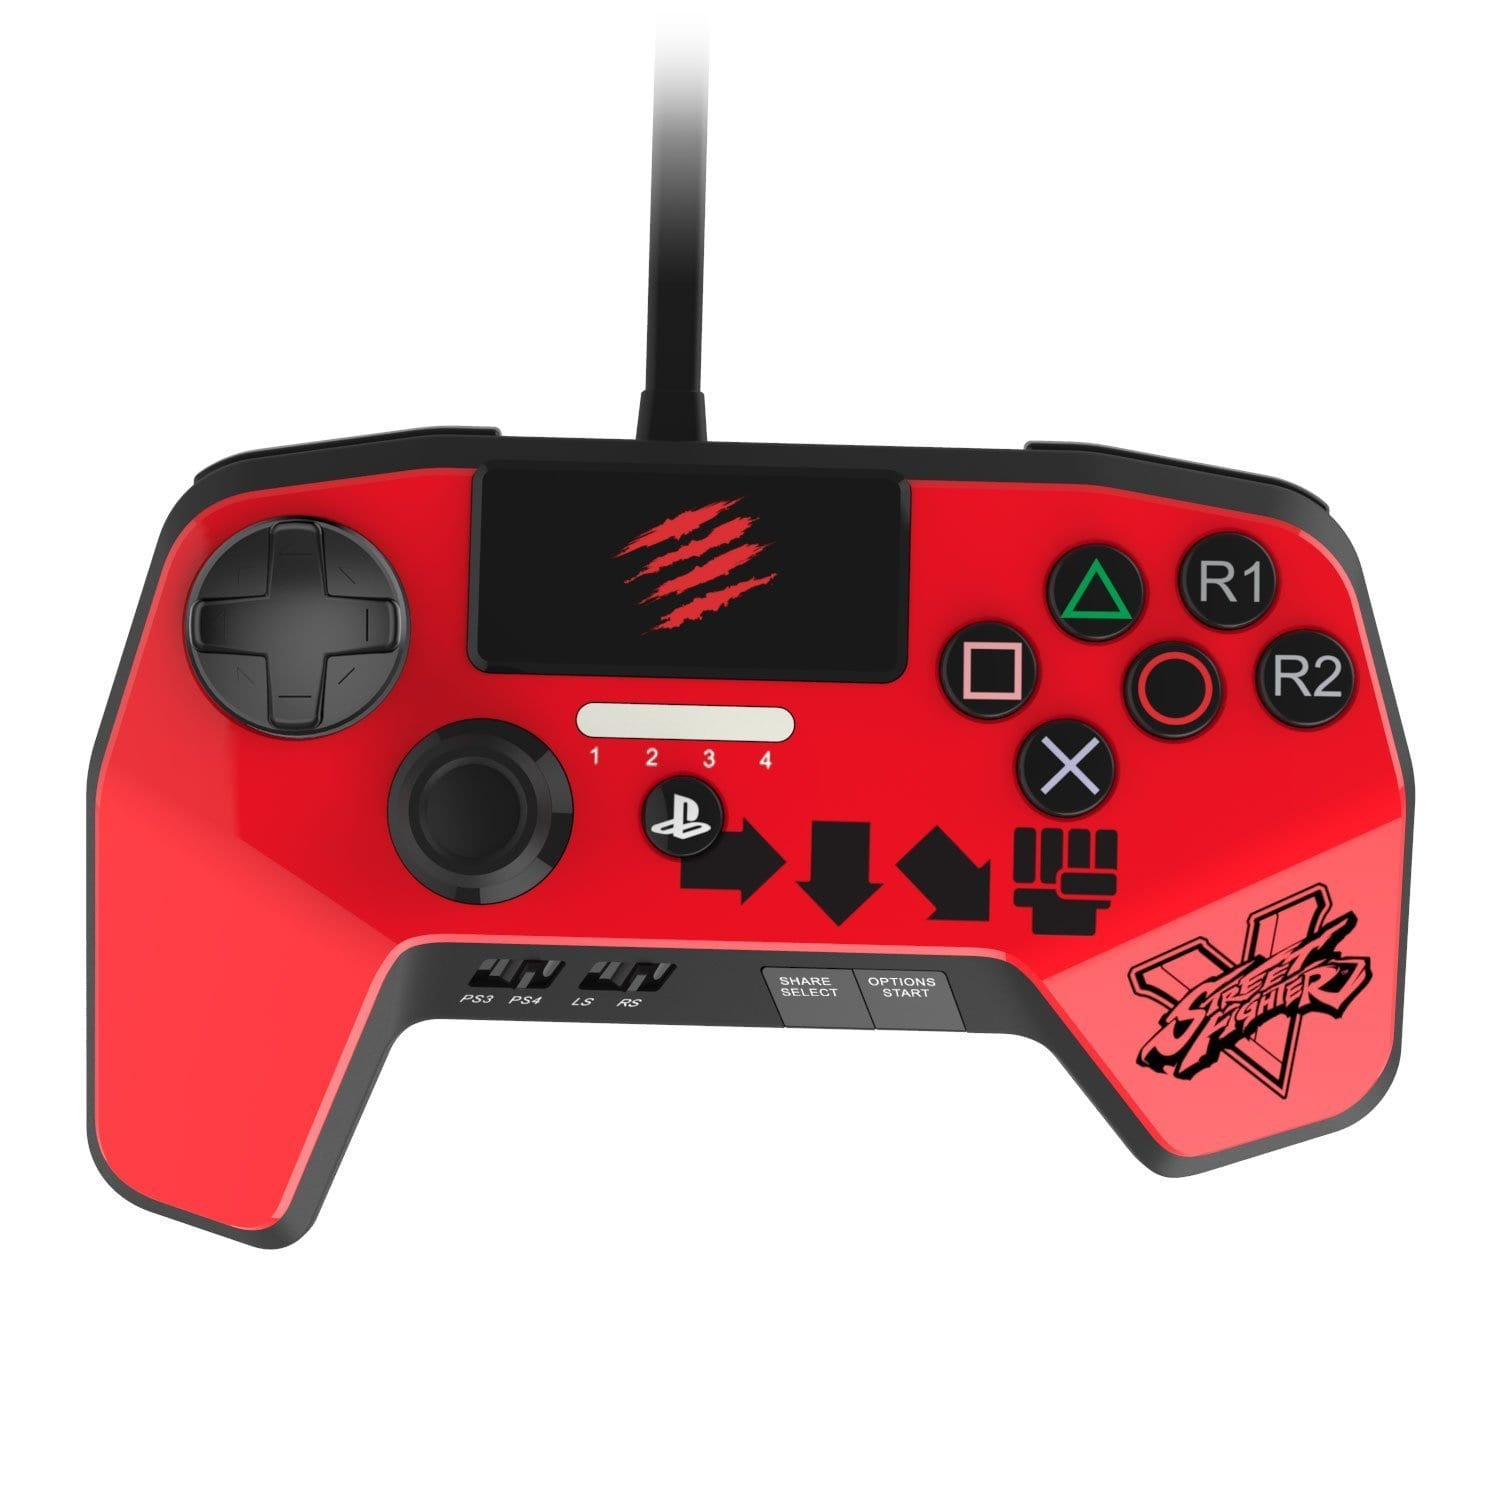 SparkFox Madcatz Controller Red - PS3/PS4